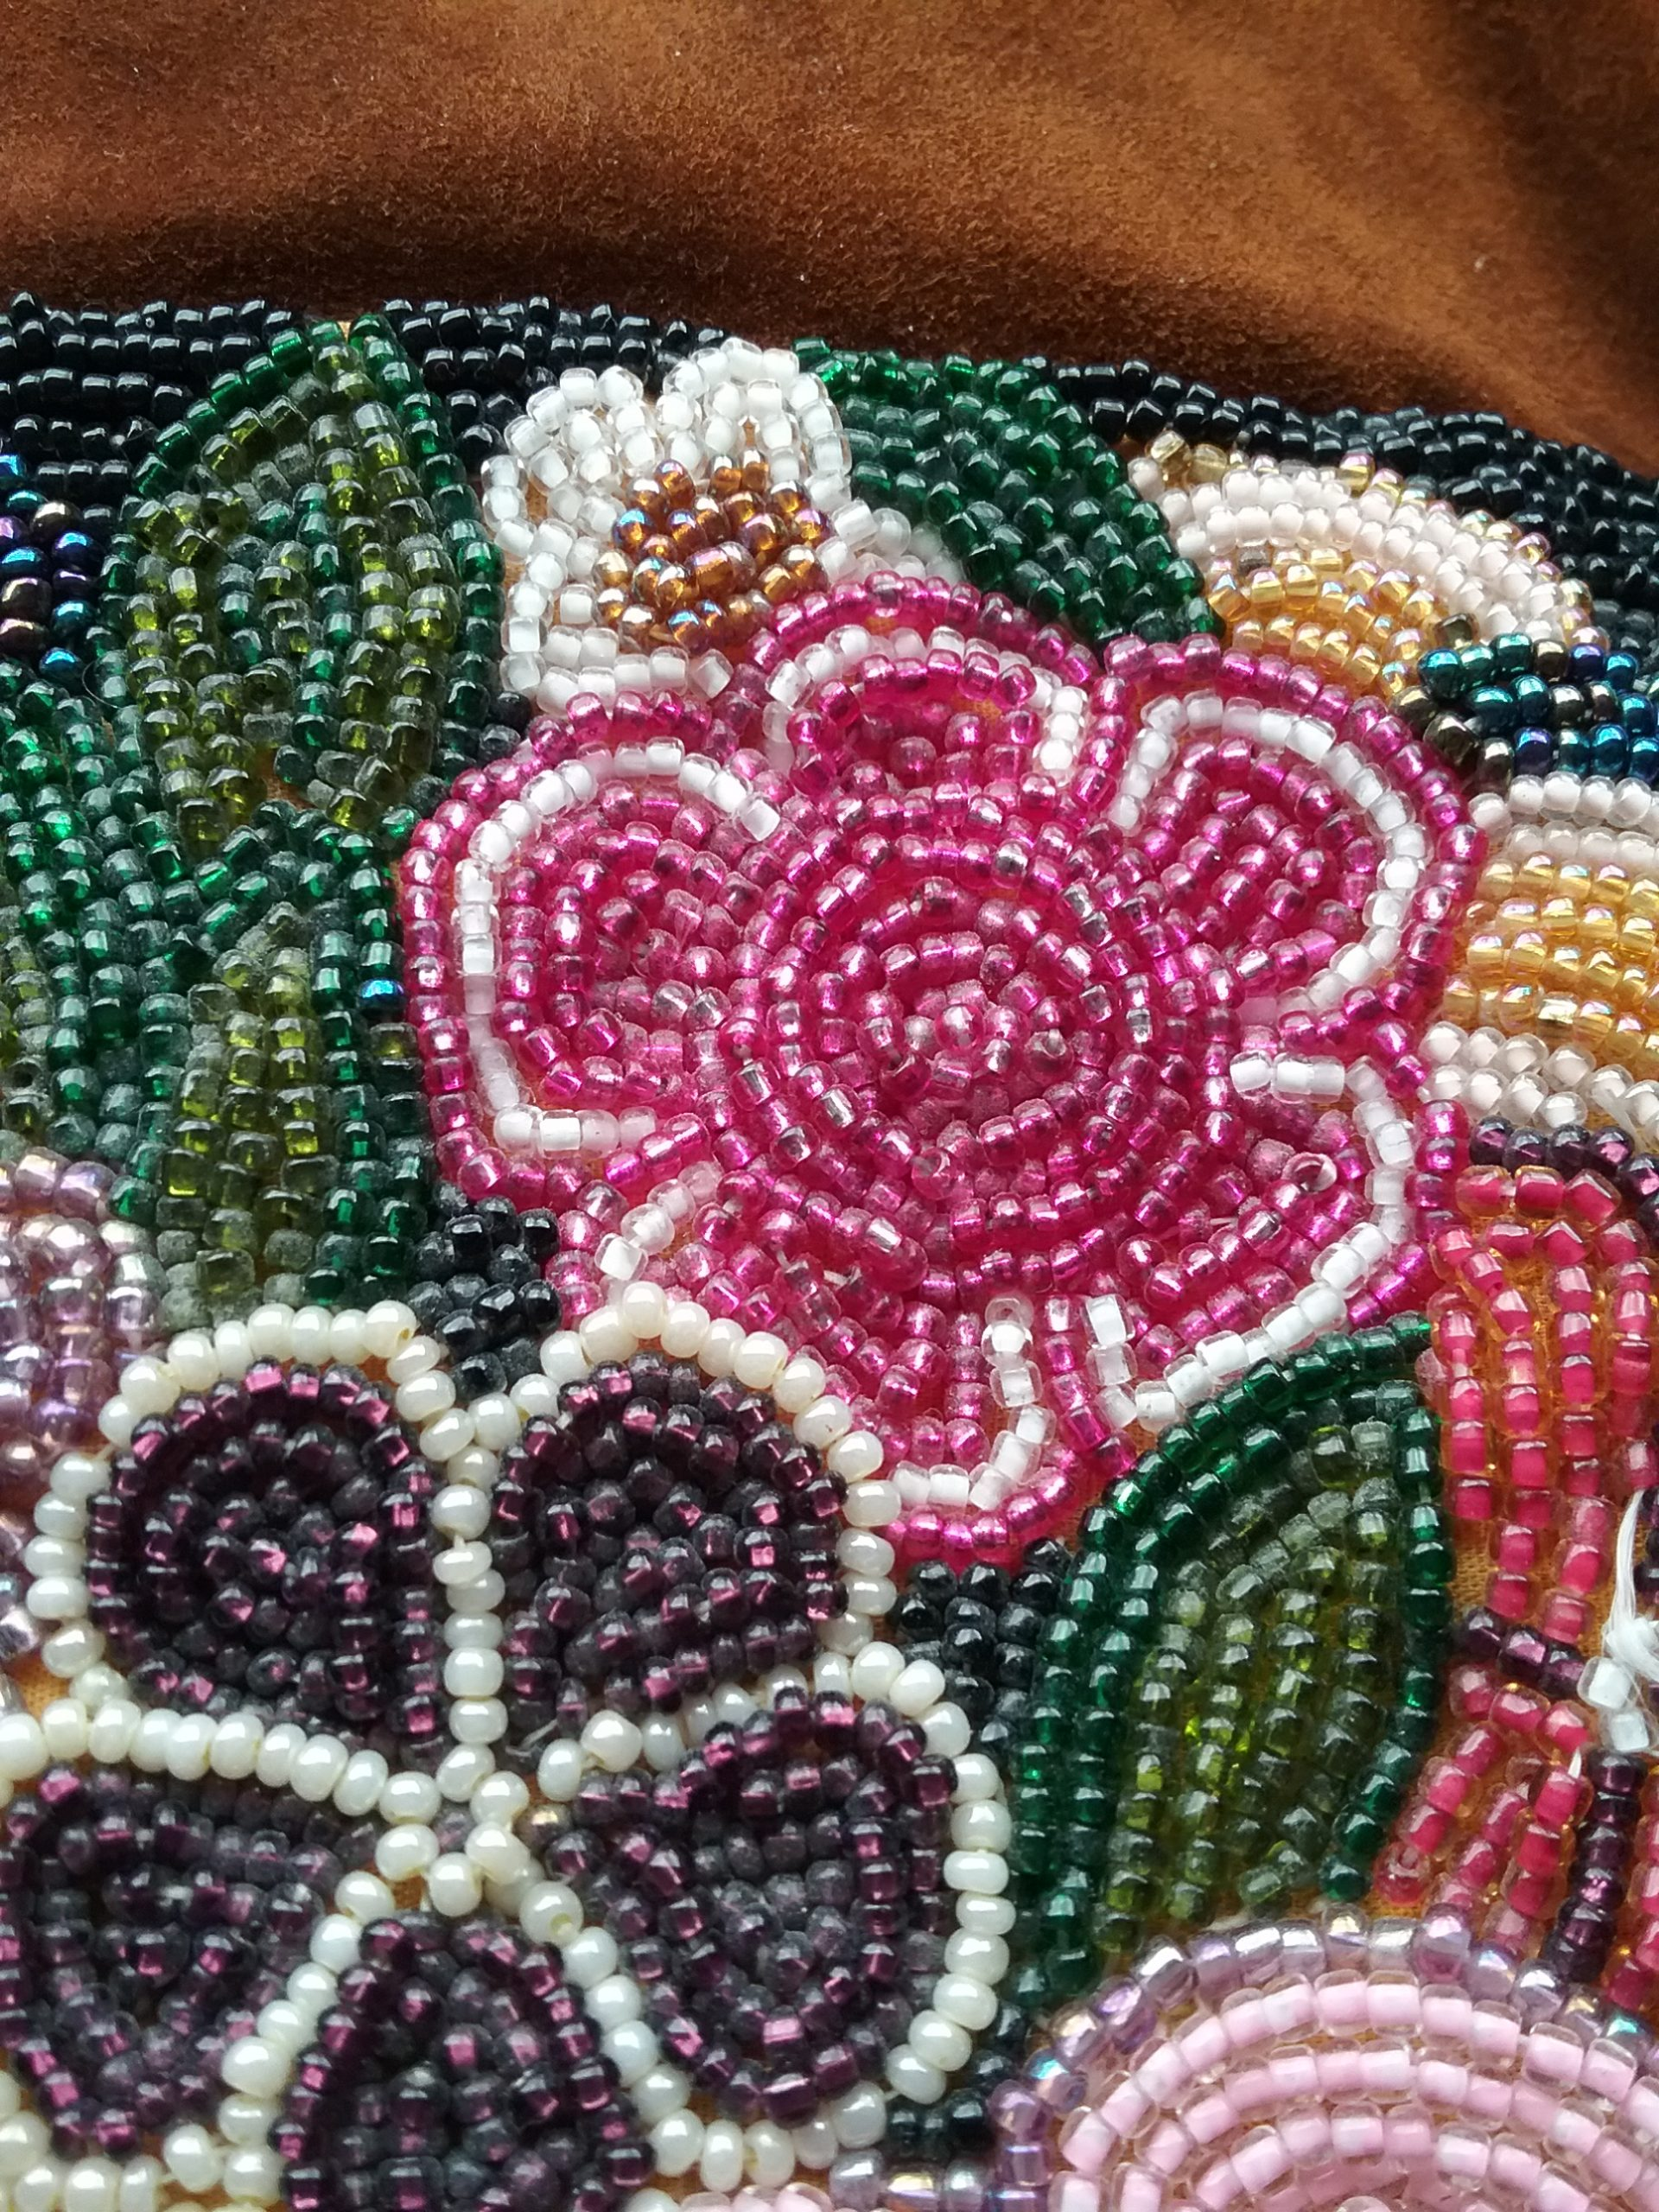 Detail of beadwork on beaded leather bag made by Sister Carol Schmit, OSF. On loan for the BEAD Exhibit from Sr. Carol Schmit.